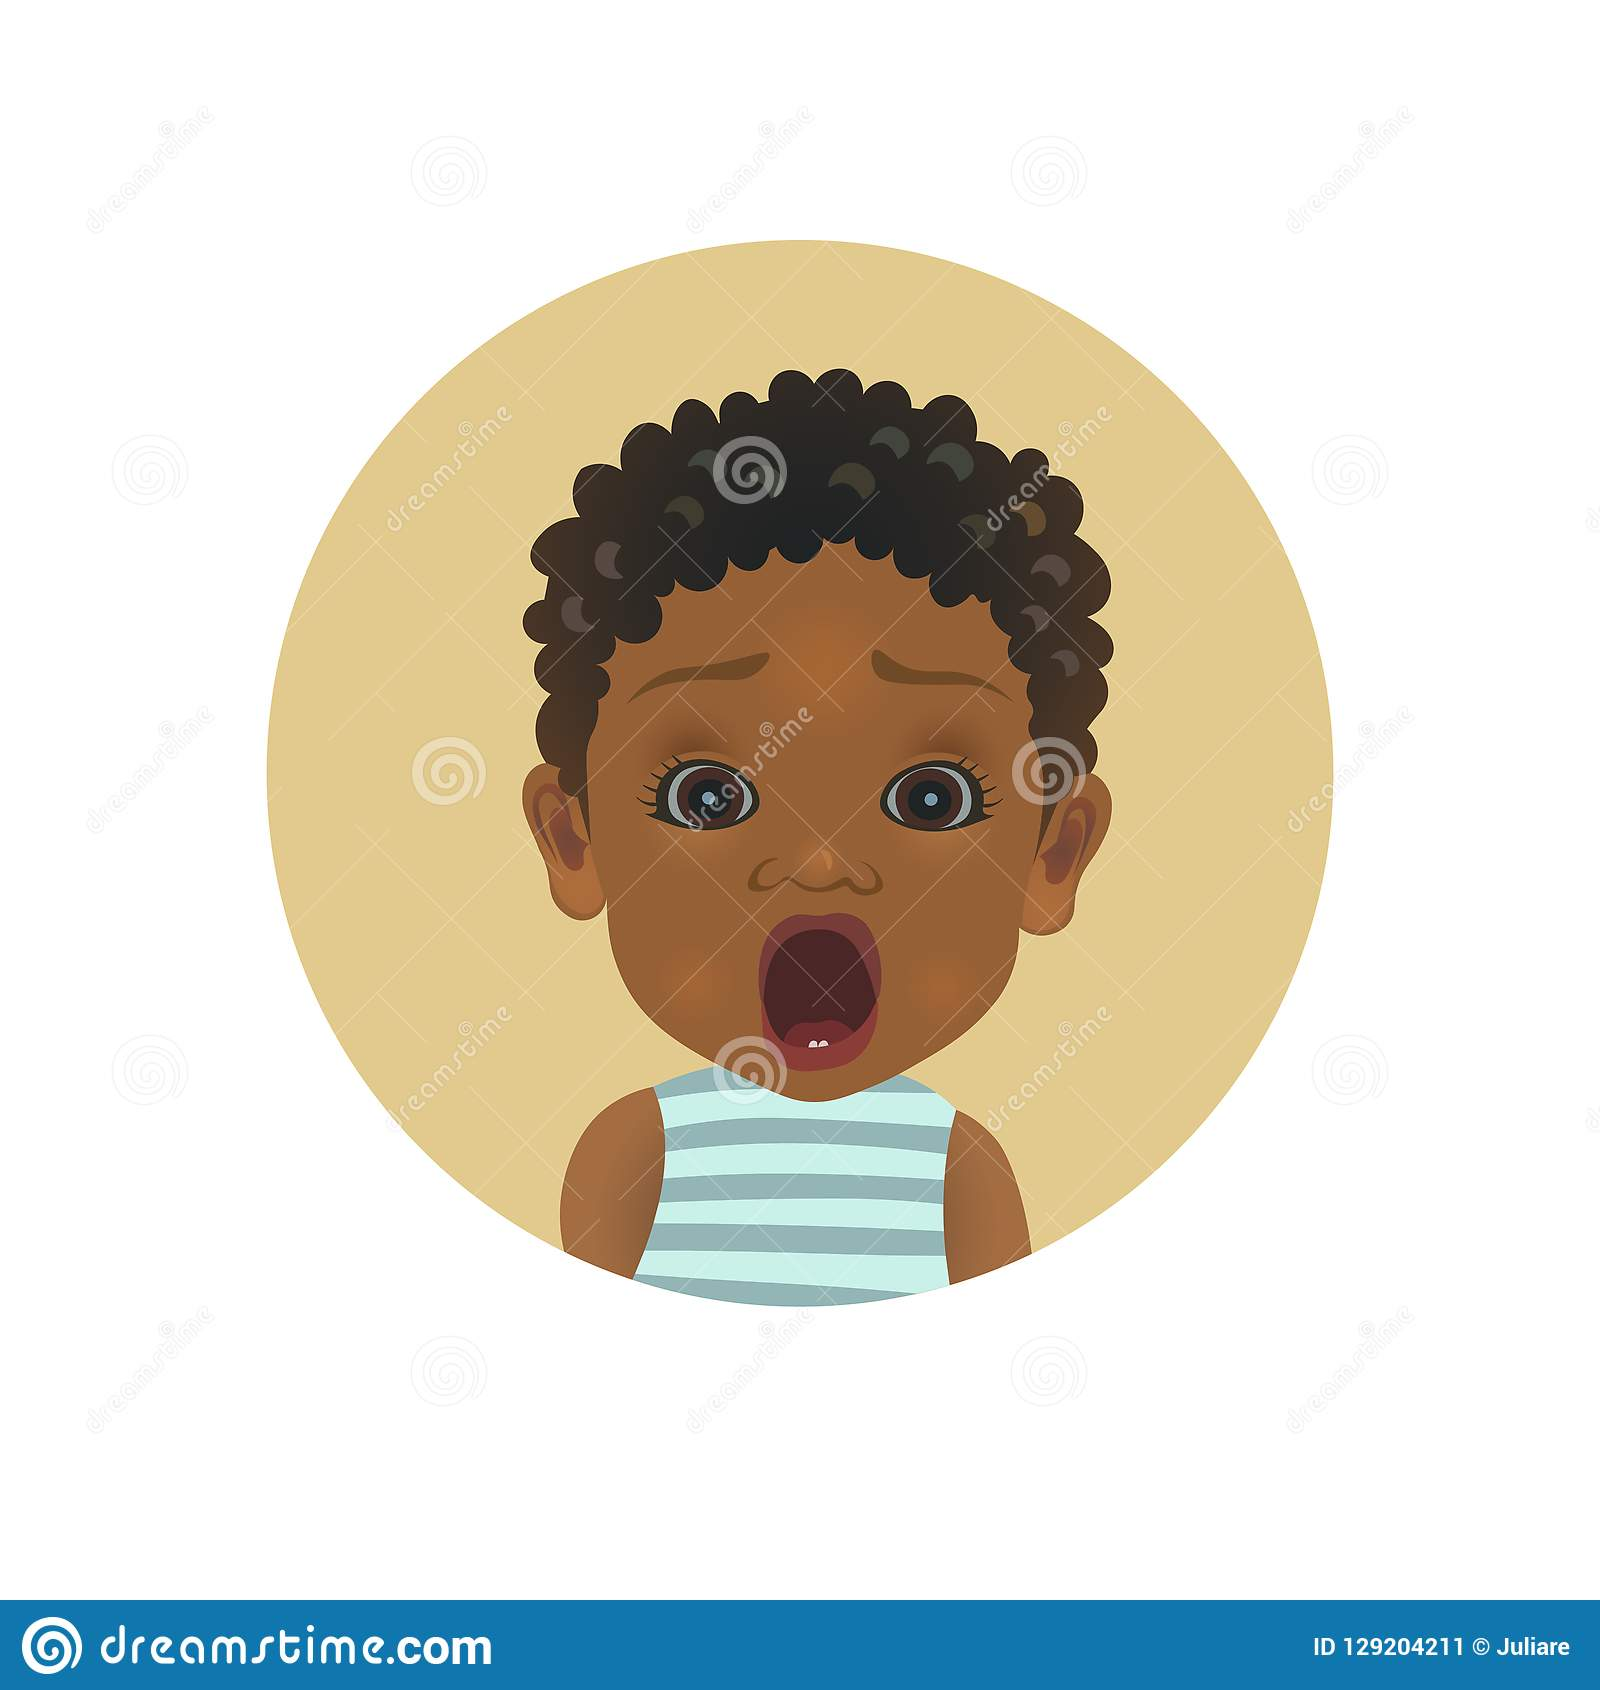 Cute shocked Afro American baby emoticon. Scared African child emoji. Afraid toddler smiley. Frightened facial expression avatar.